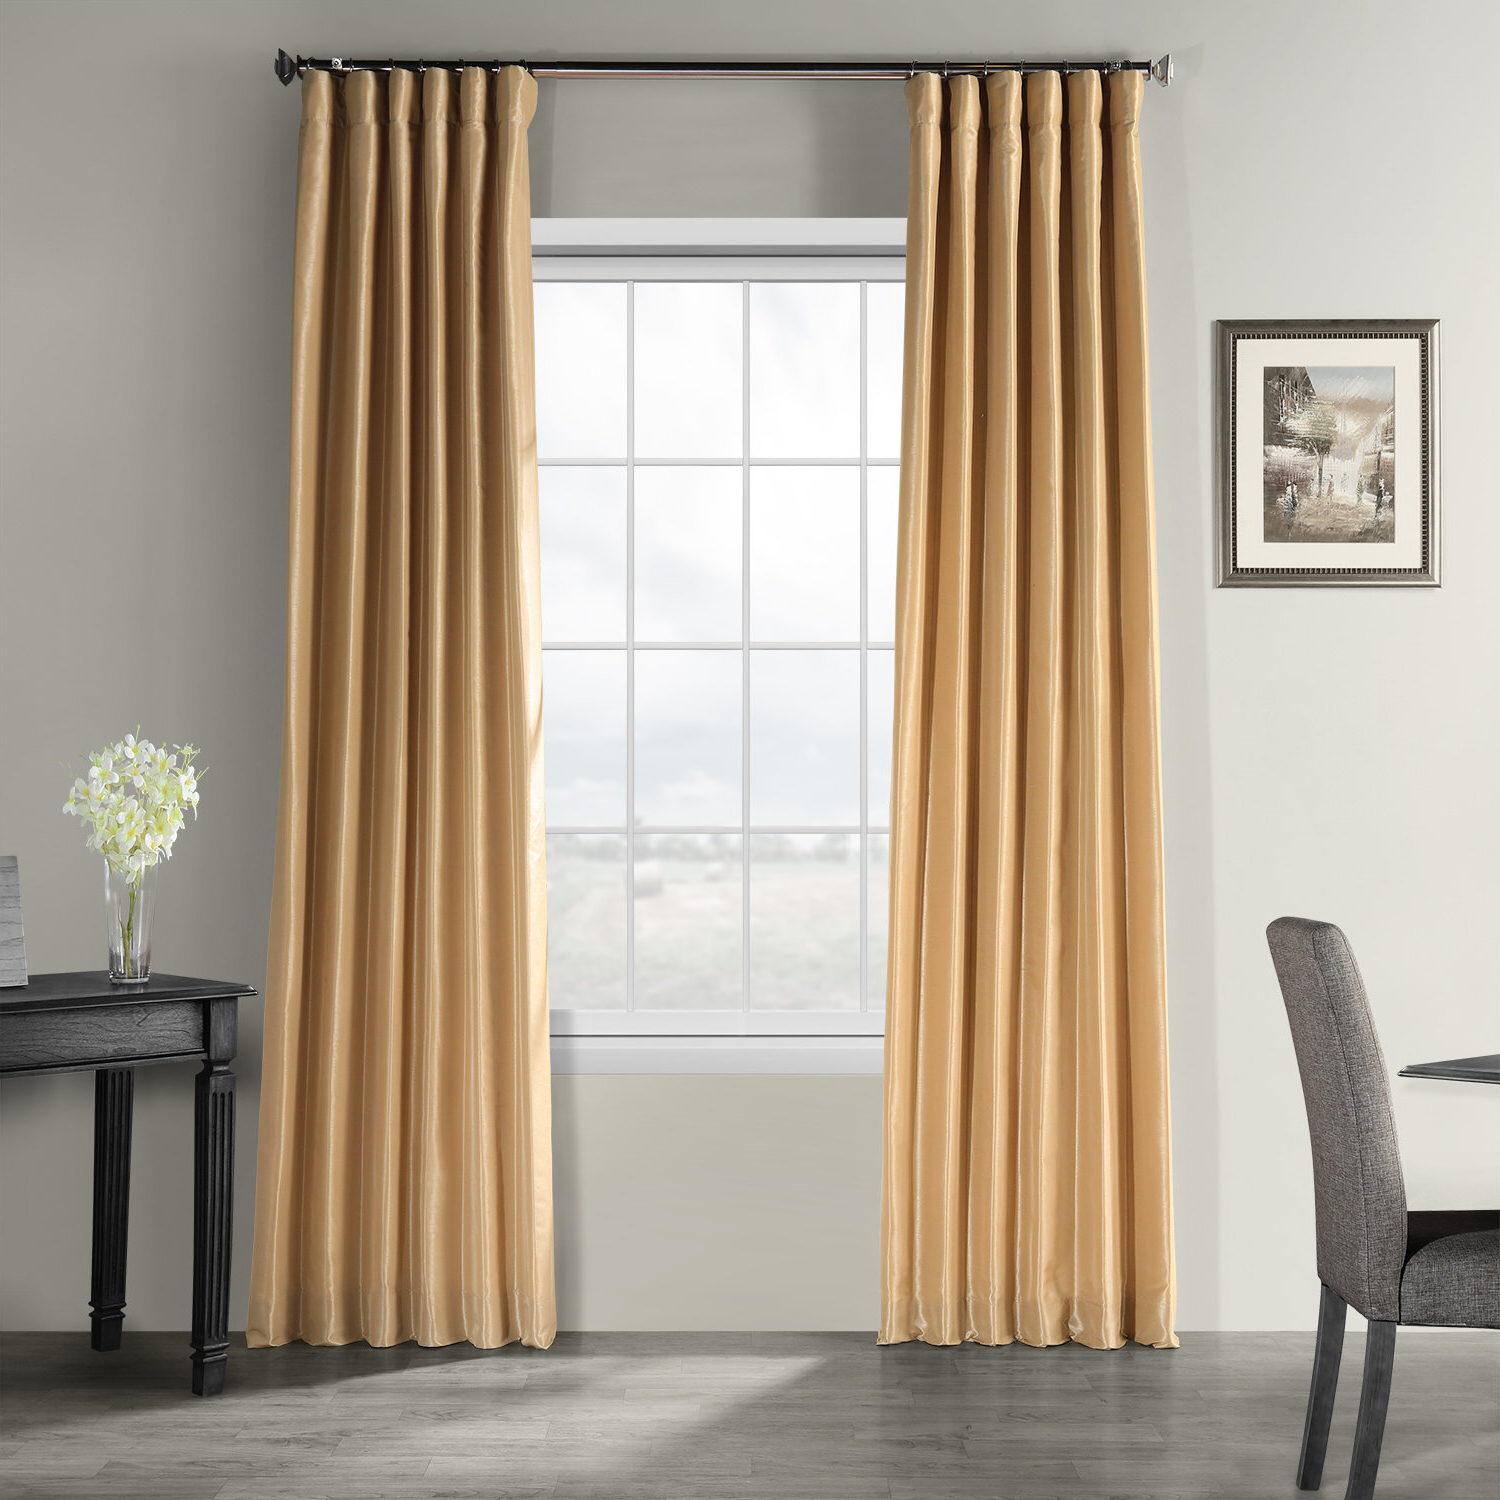 Well Known Forbell Solid Vintage Textured Faux Dupioni Silk Rod Pocket Single Curtain Panel Pertaining To Vintage Textured Faux Dupioni Silk Curtain Panels (View 2 of 20)